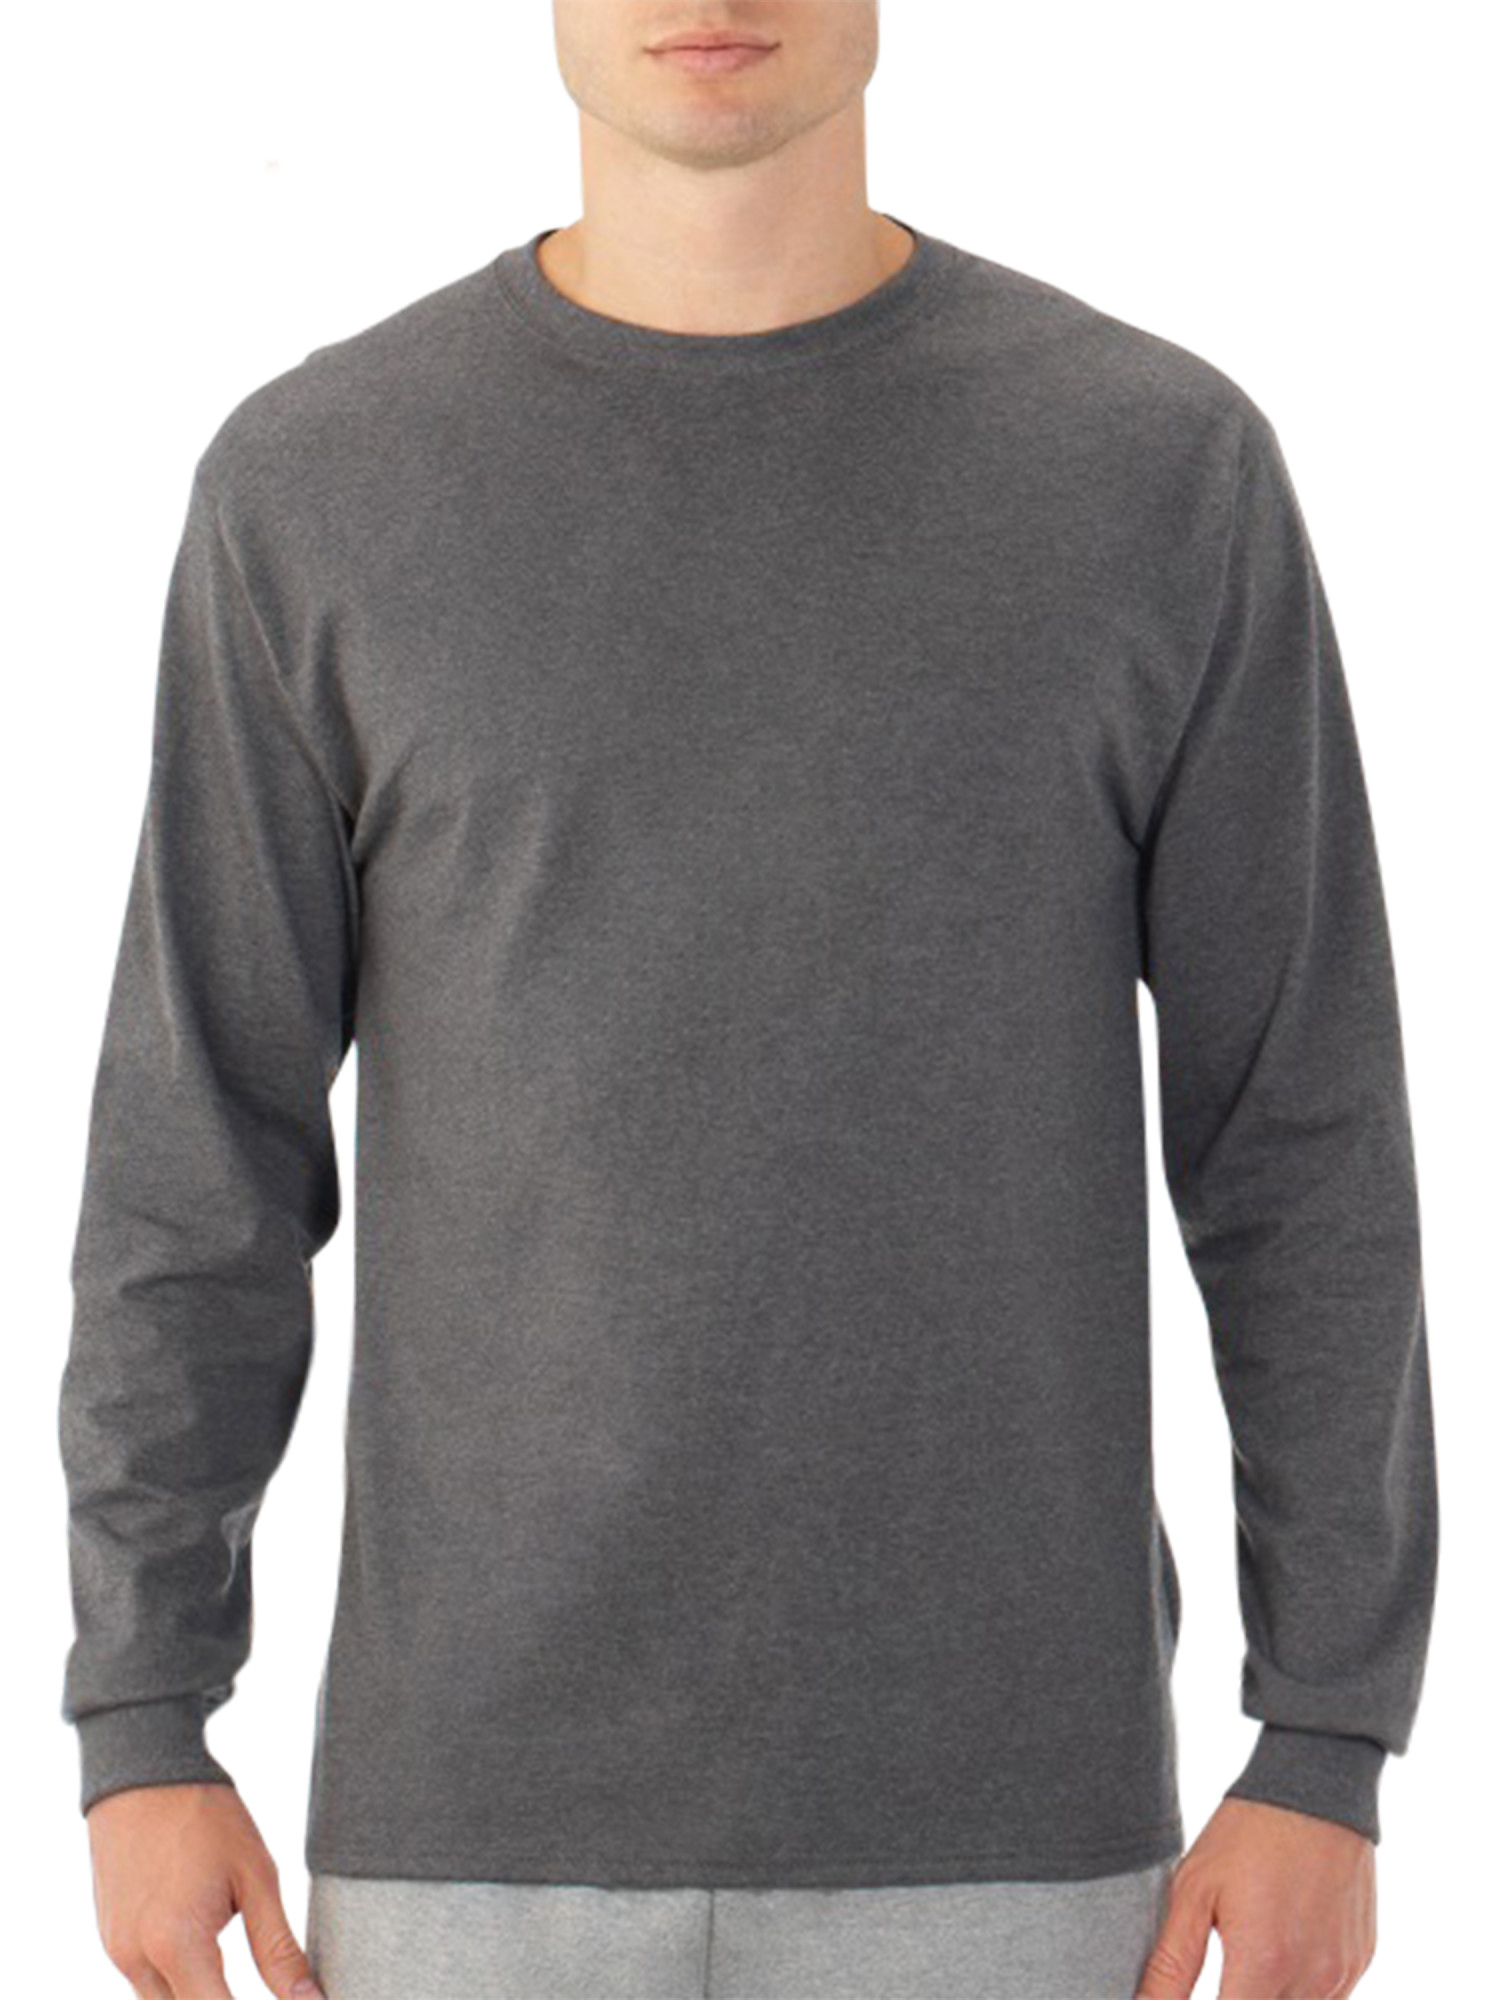 ea5c06bd0a421 Fruit of the Loom - Fruit of the Loom Men s Platinum EverSoft Long Sleeve T- Shirt